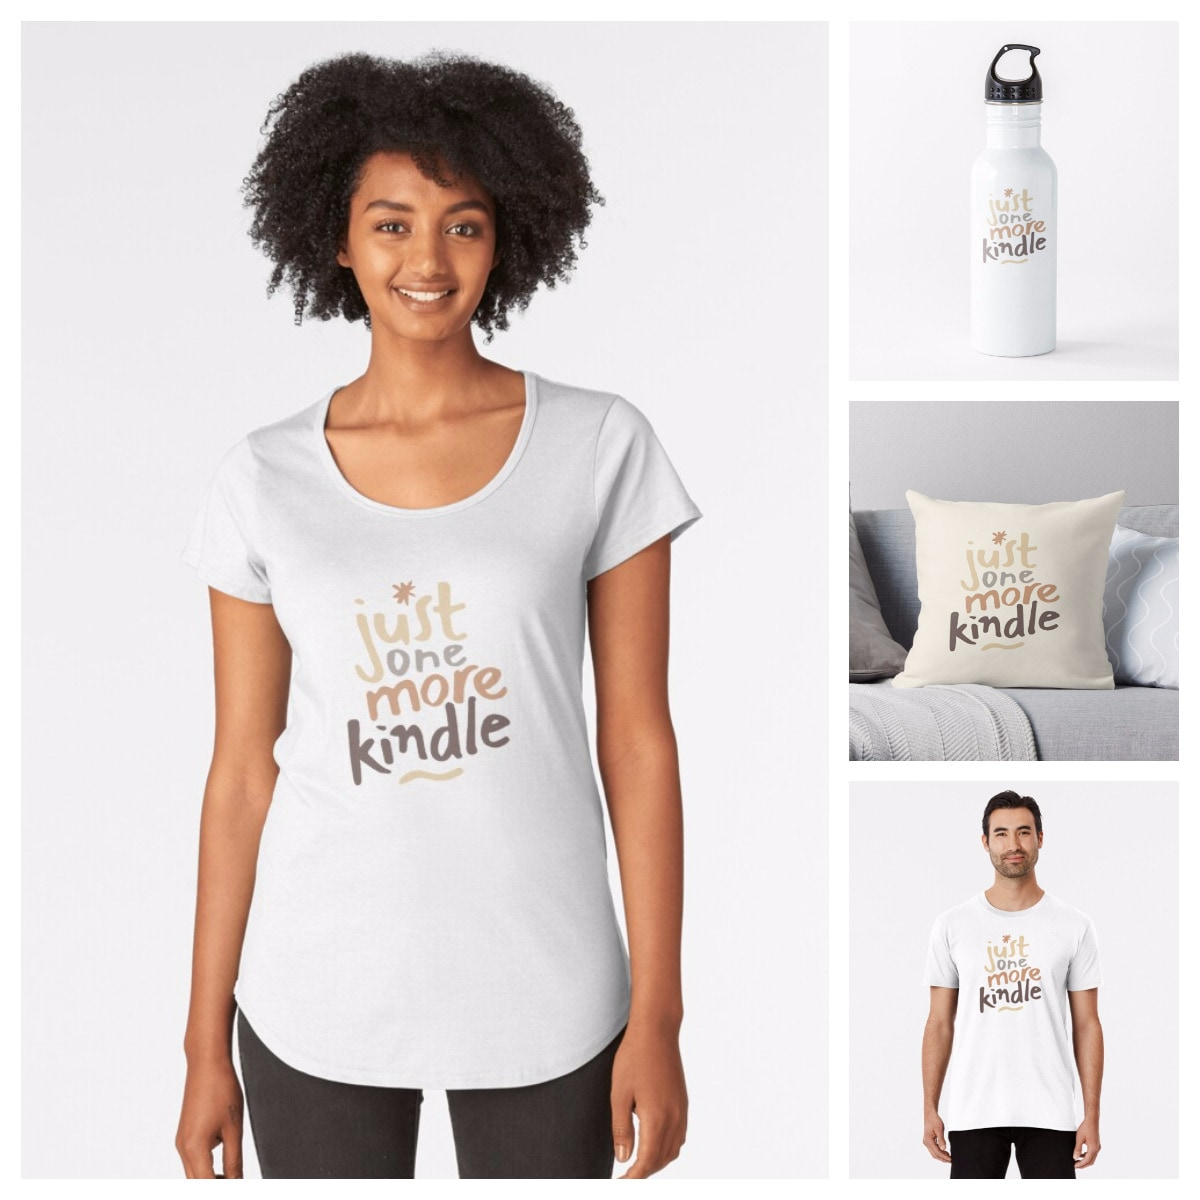 Just one more Kindle - t-shirt, pillow, bottle, more